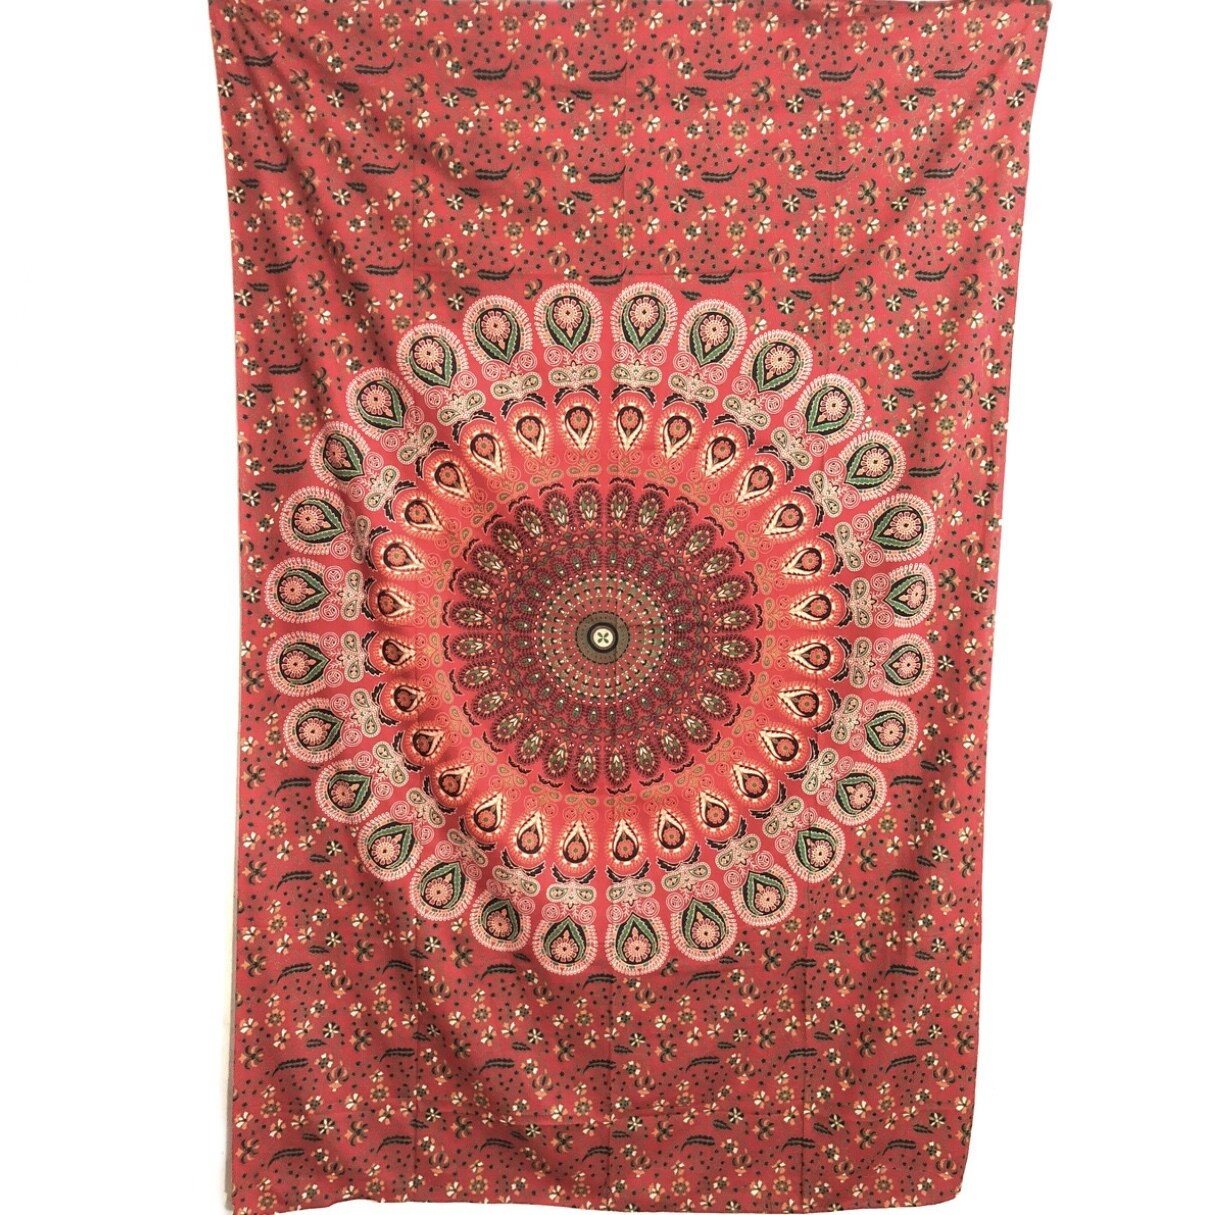 RED MANDALA HIPPIE TAPESTRY